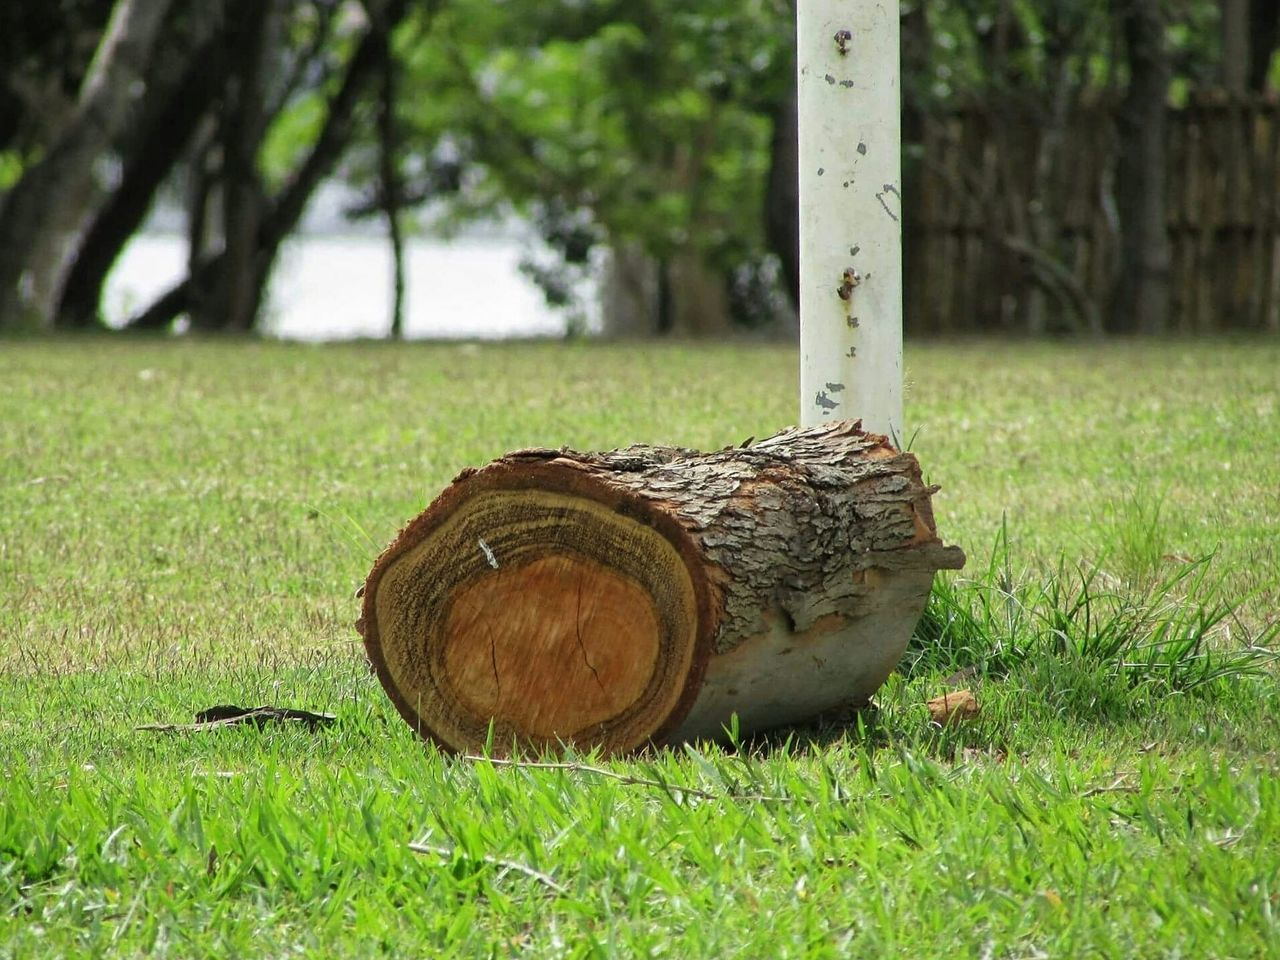 grass, day, outdoors, green color, no people, field, nature, tree, barrel, close-up